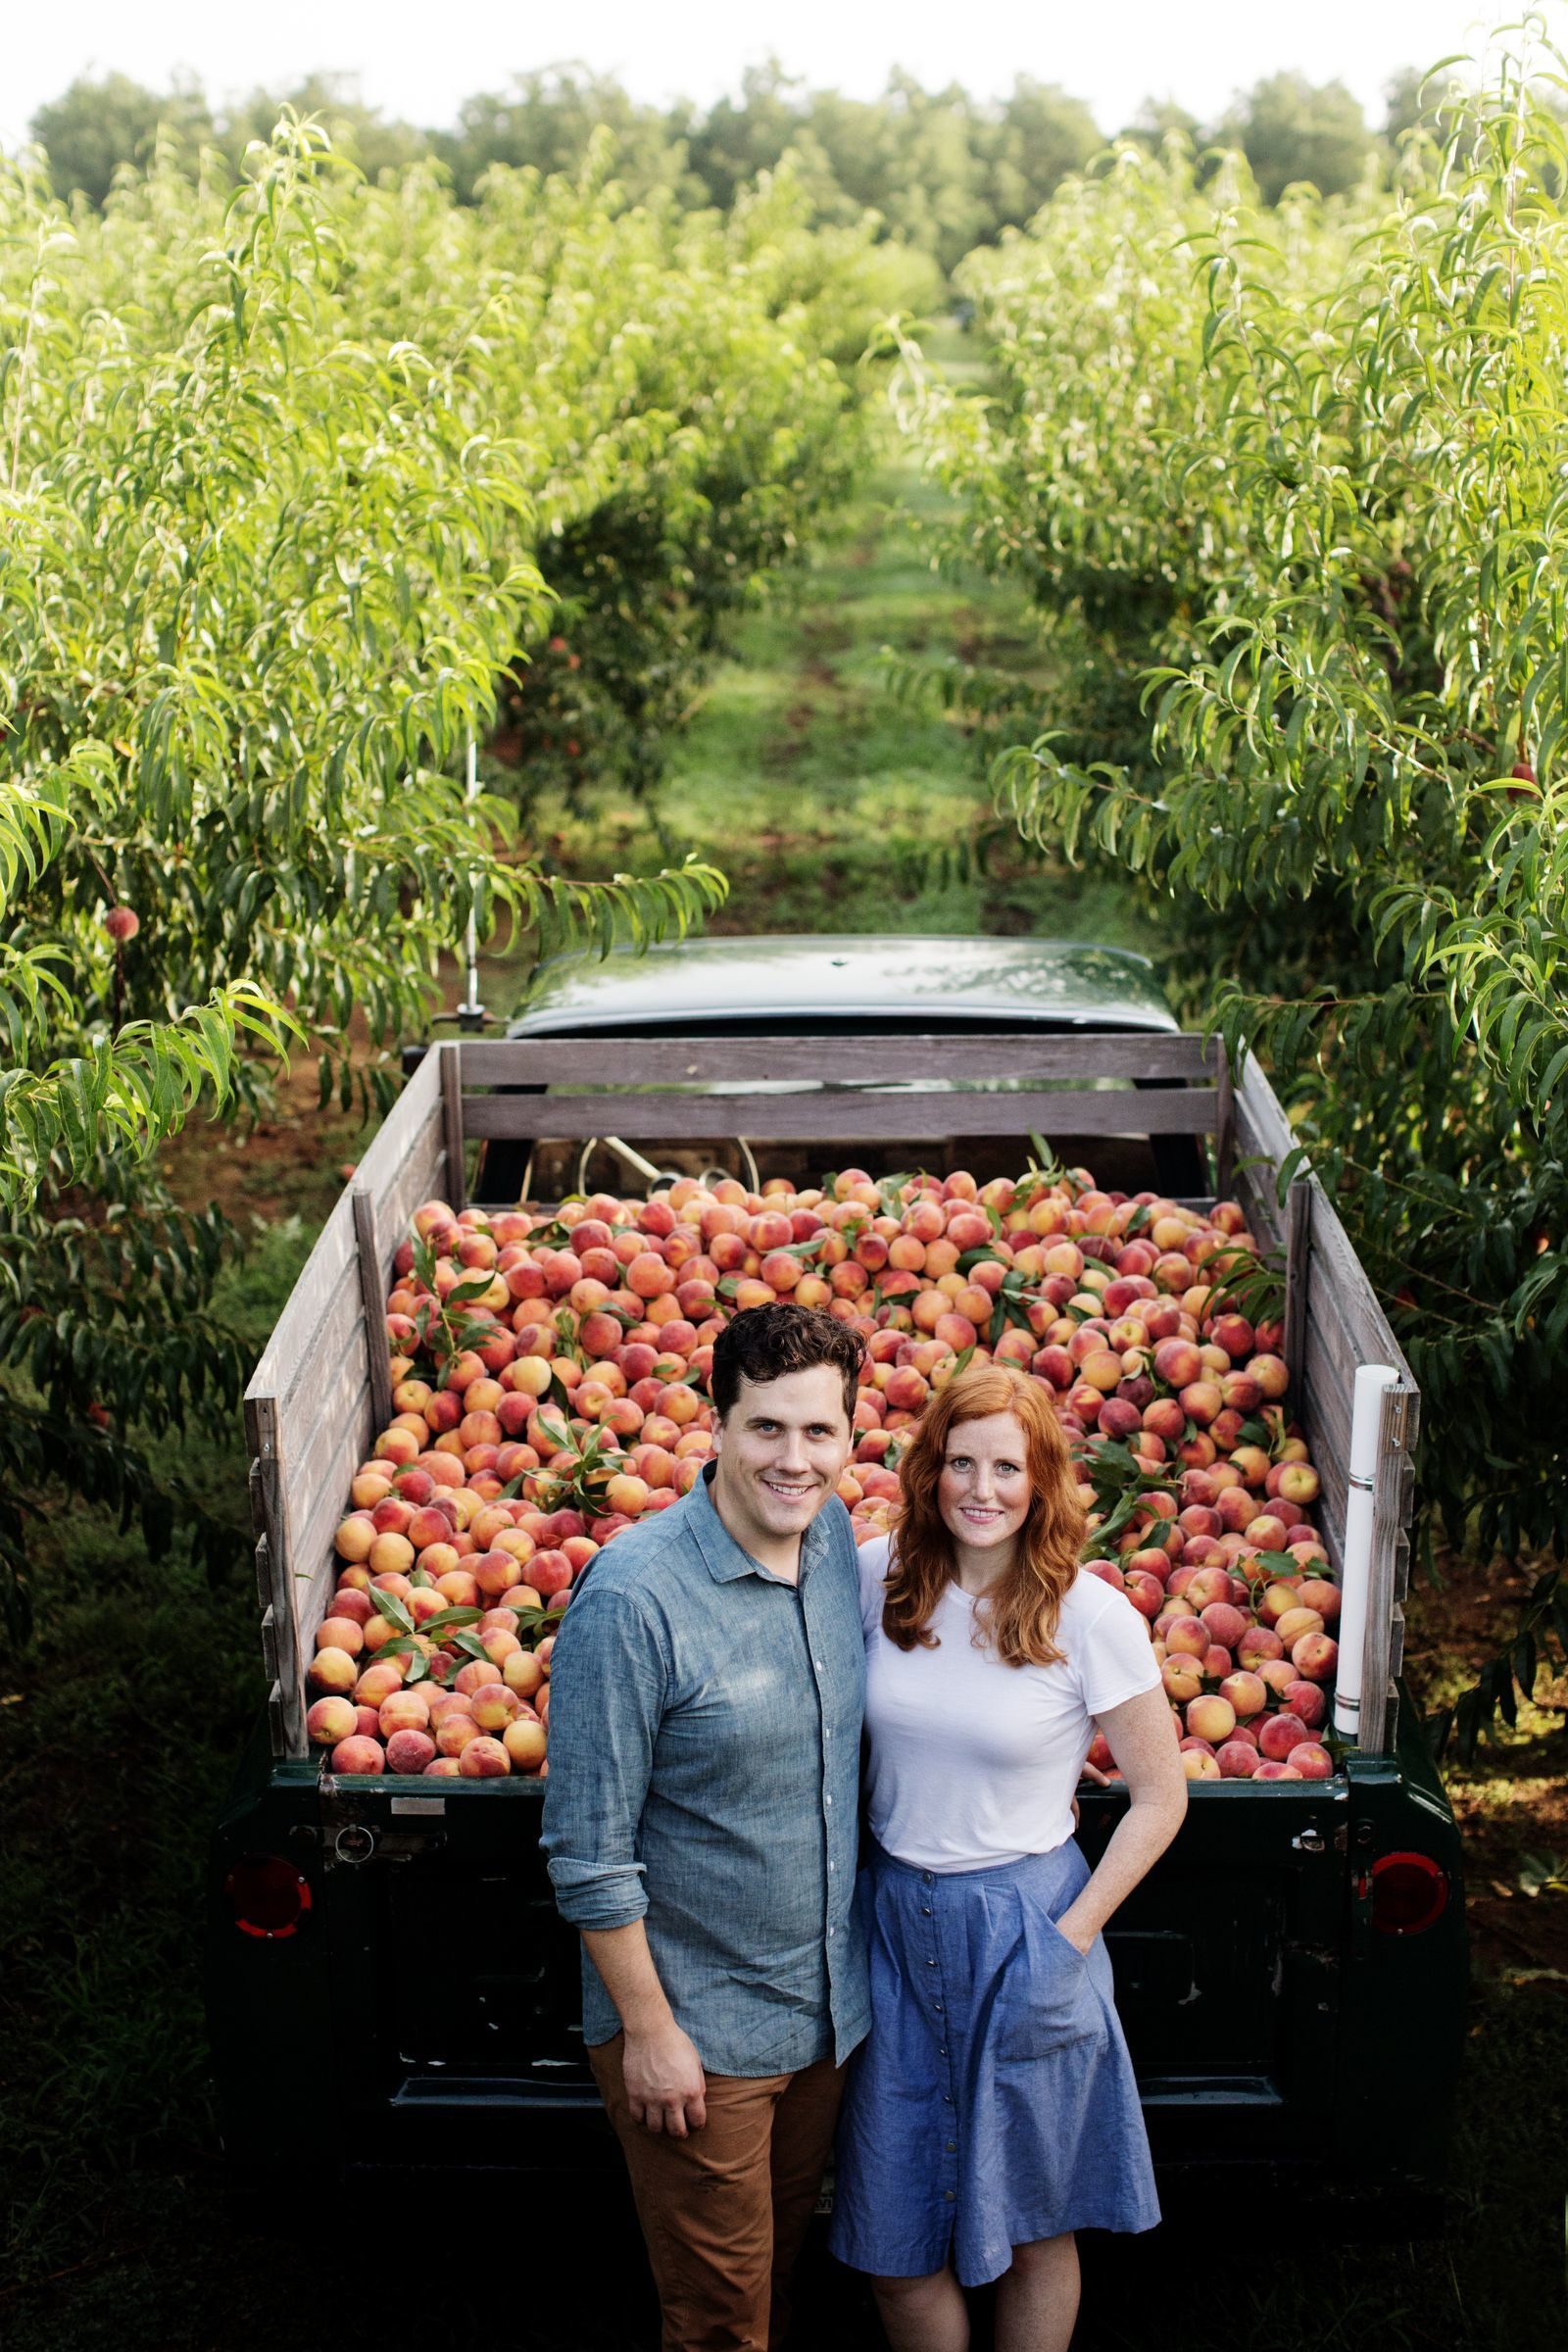 Stephen and Jessica Rose started the Peach Truck in Nashville. They truck in peaches from Georgia.